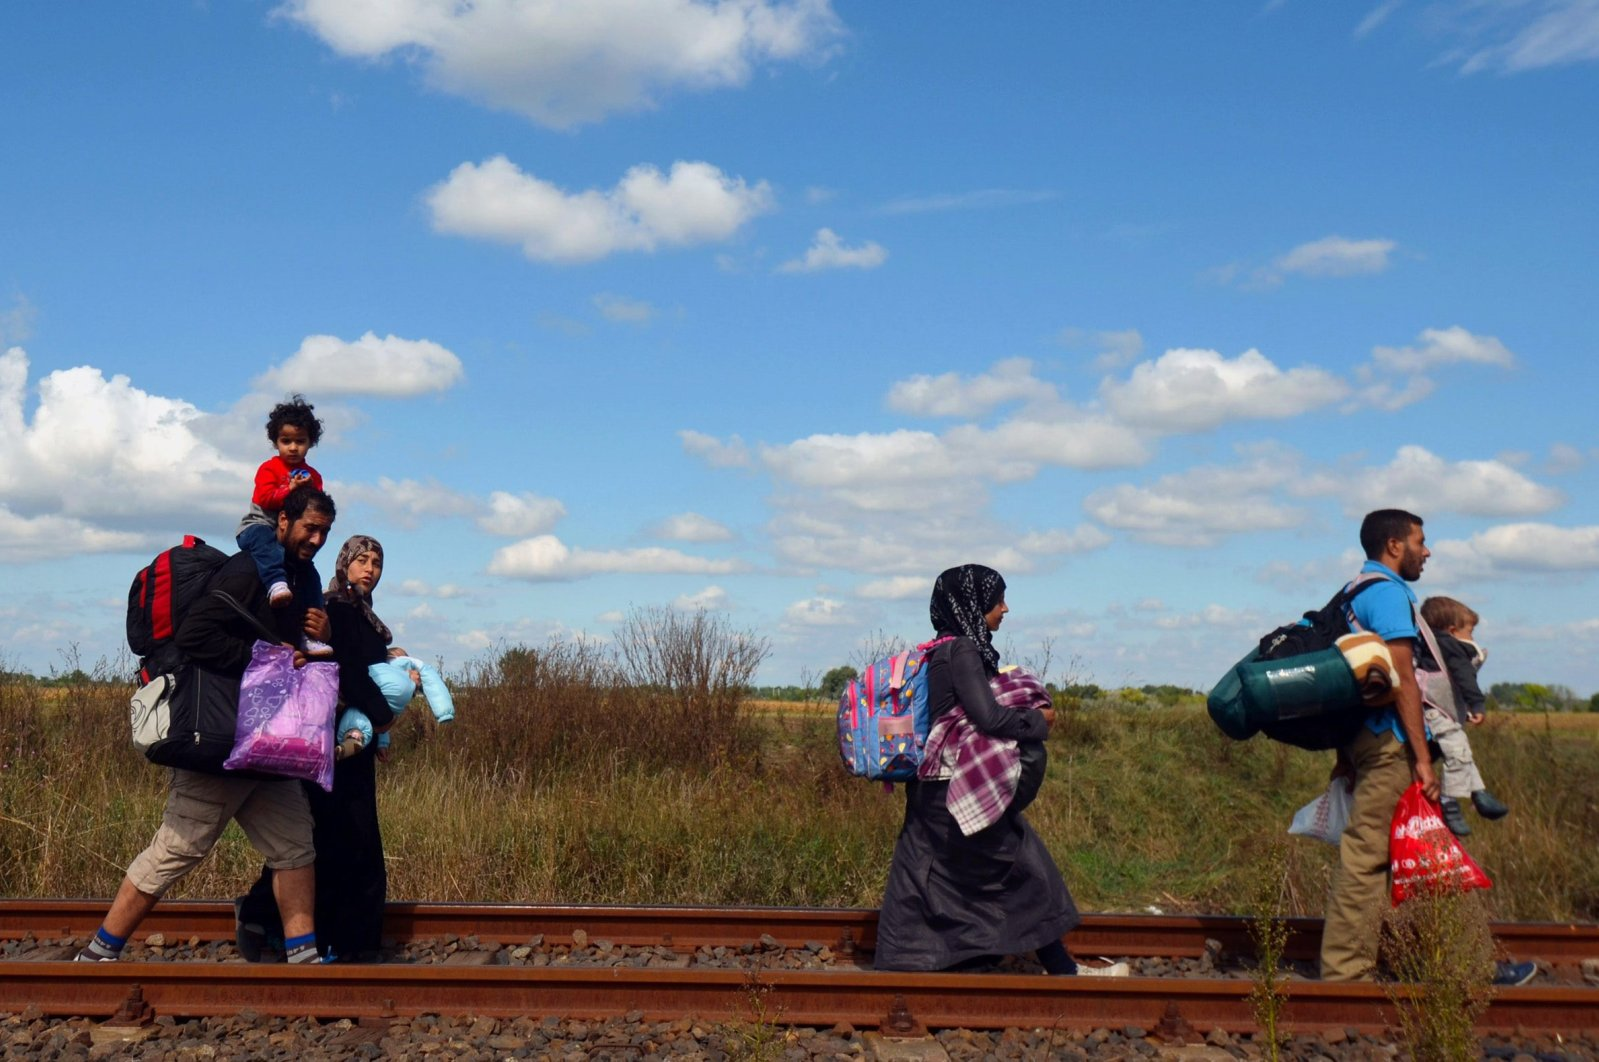 Migrant families walk on the railway track at the Hungarian-Serbian border near the village of Roszke, Hungary, Sept. 6, 2015. (AFP Photo)